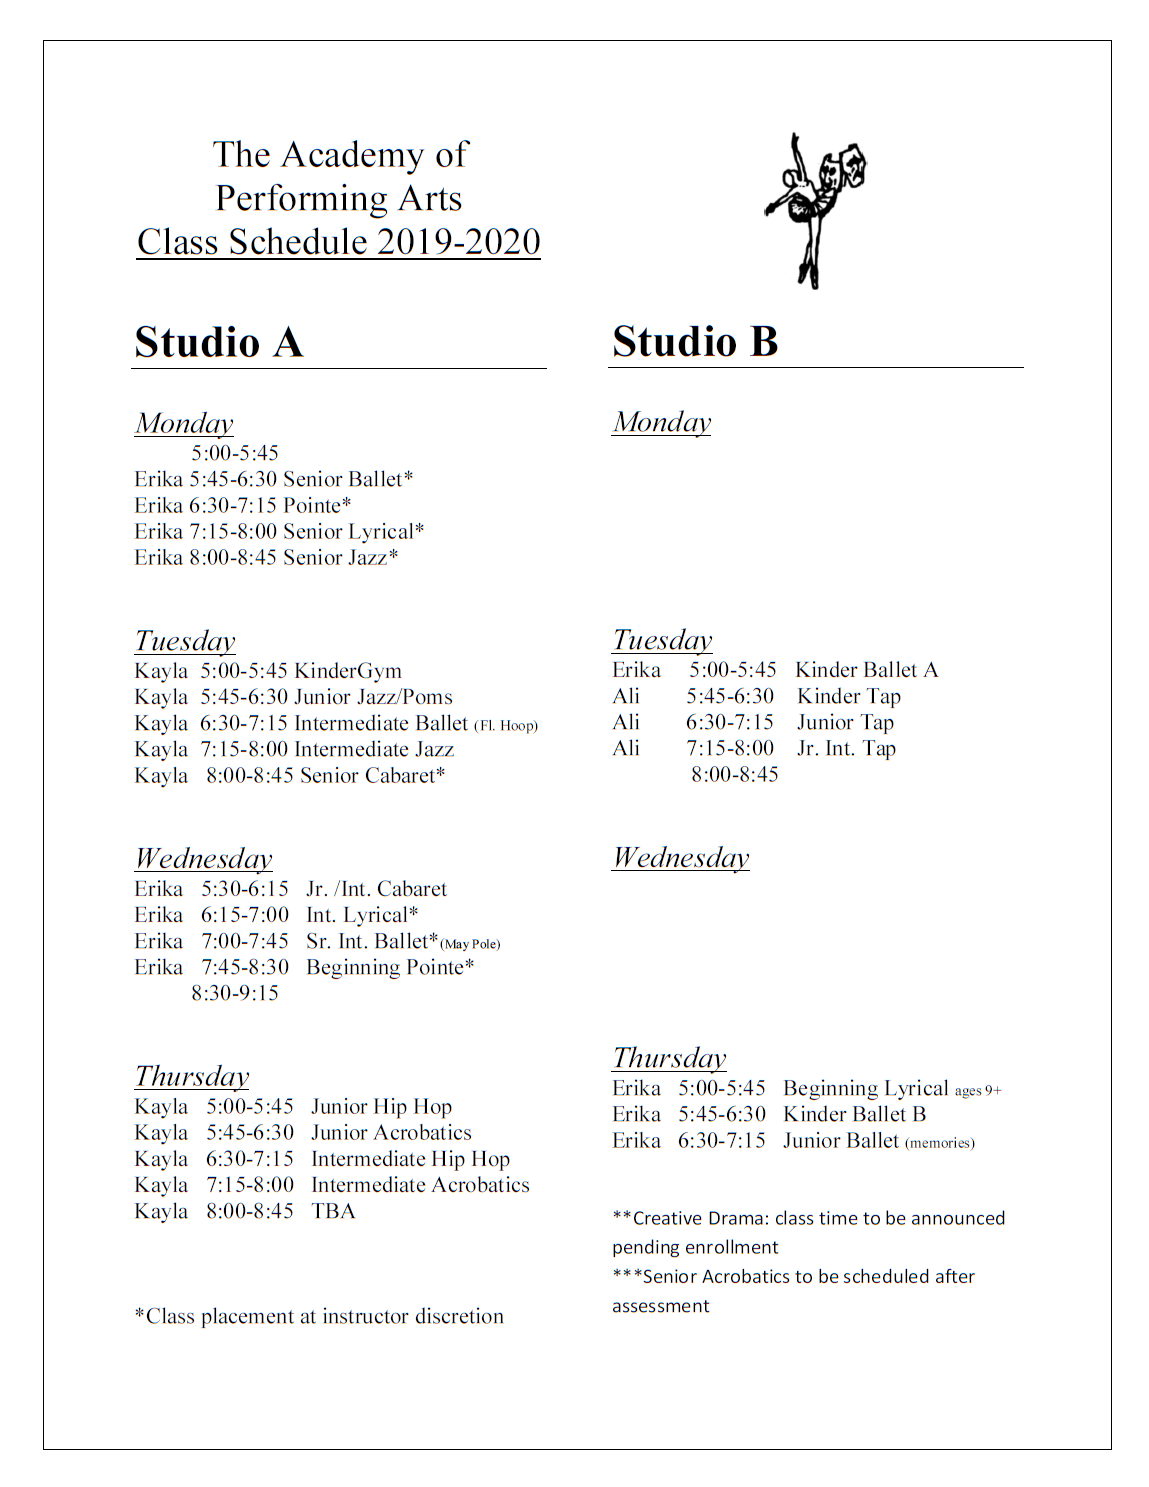 Click for a pdf of the class schedule.